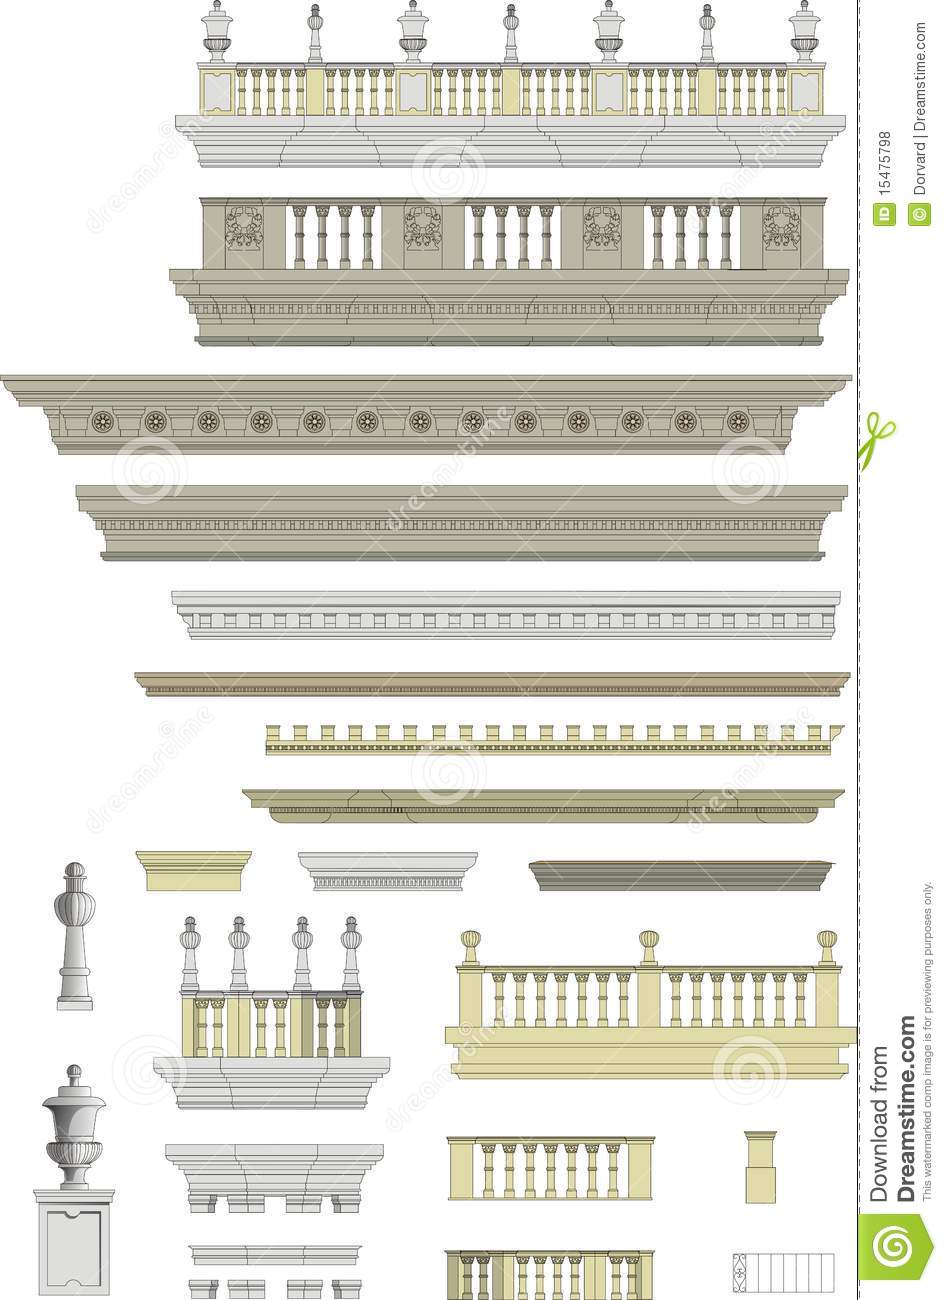 Details On Her 3 Shades Of: Architectural Roof Details, Moldings Royalty Free Stock